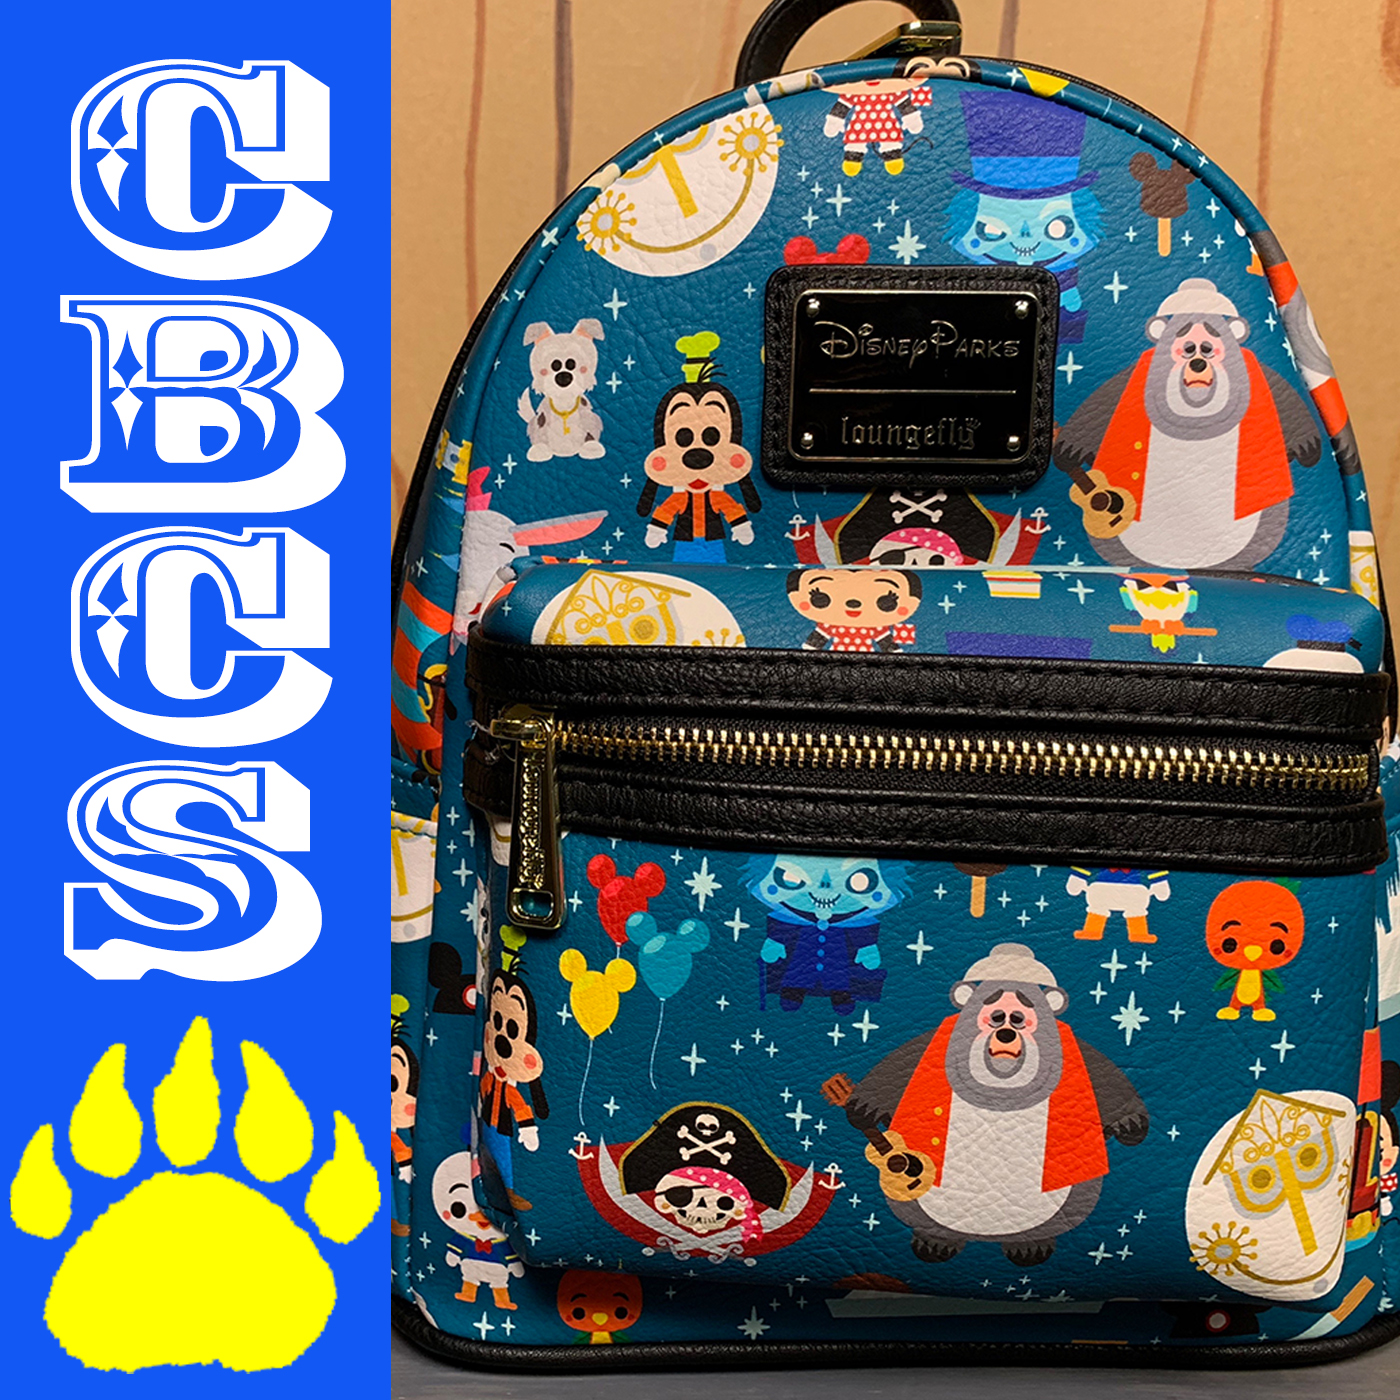 Artwork for 2019 Loungefly Cute Disney Parks Backpack - Country Bear Collector Show #213